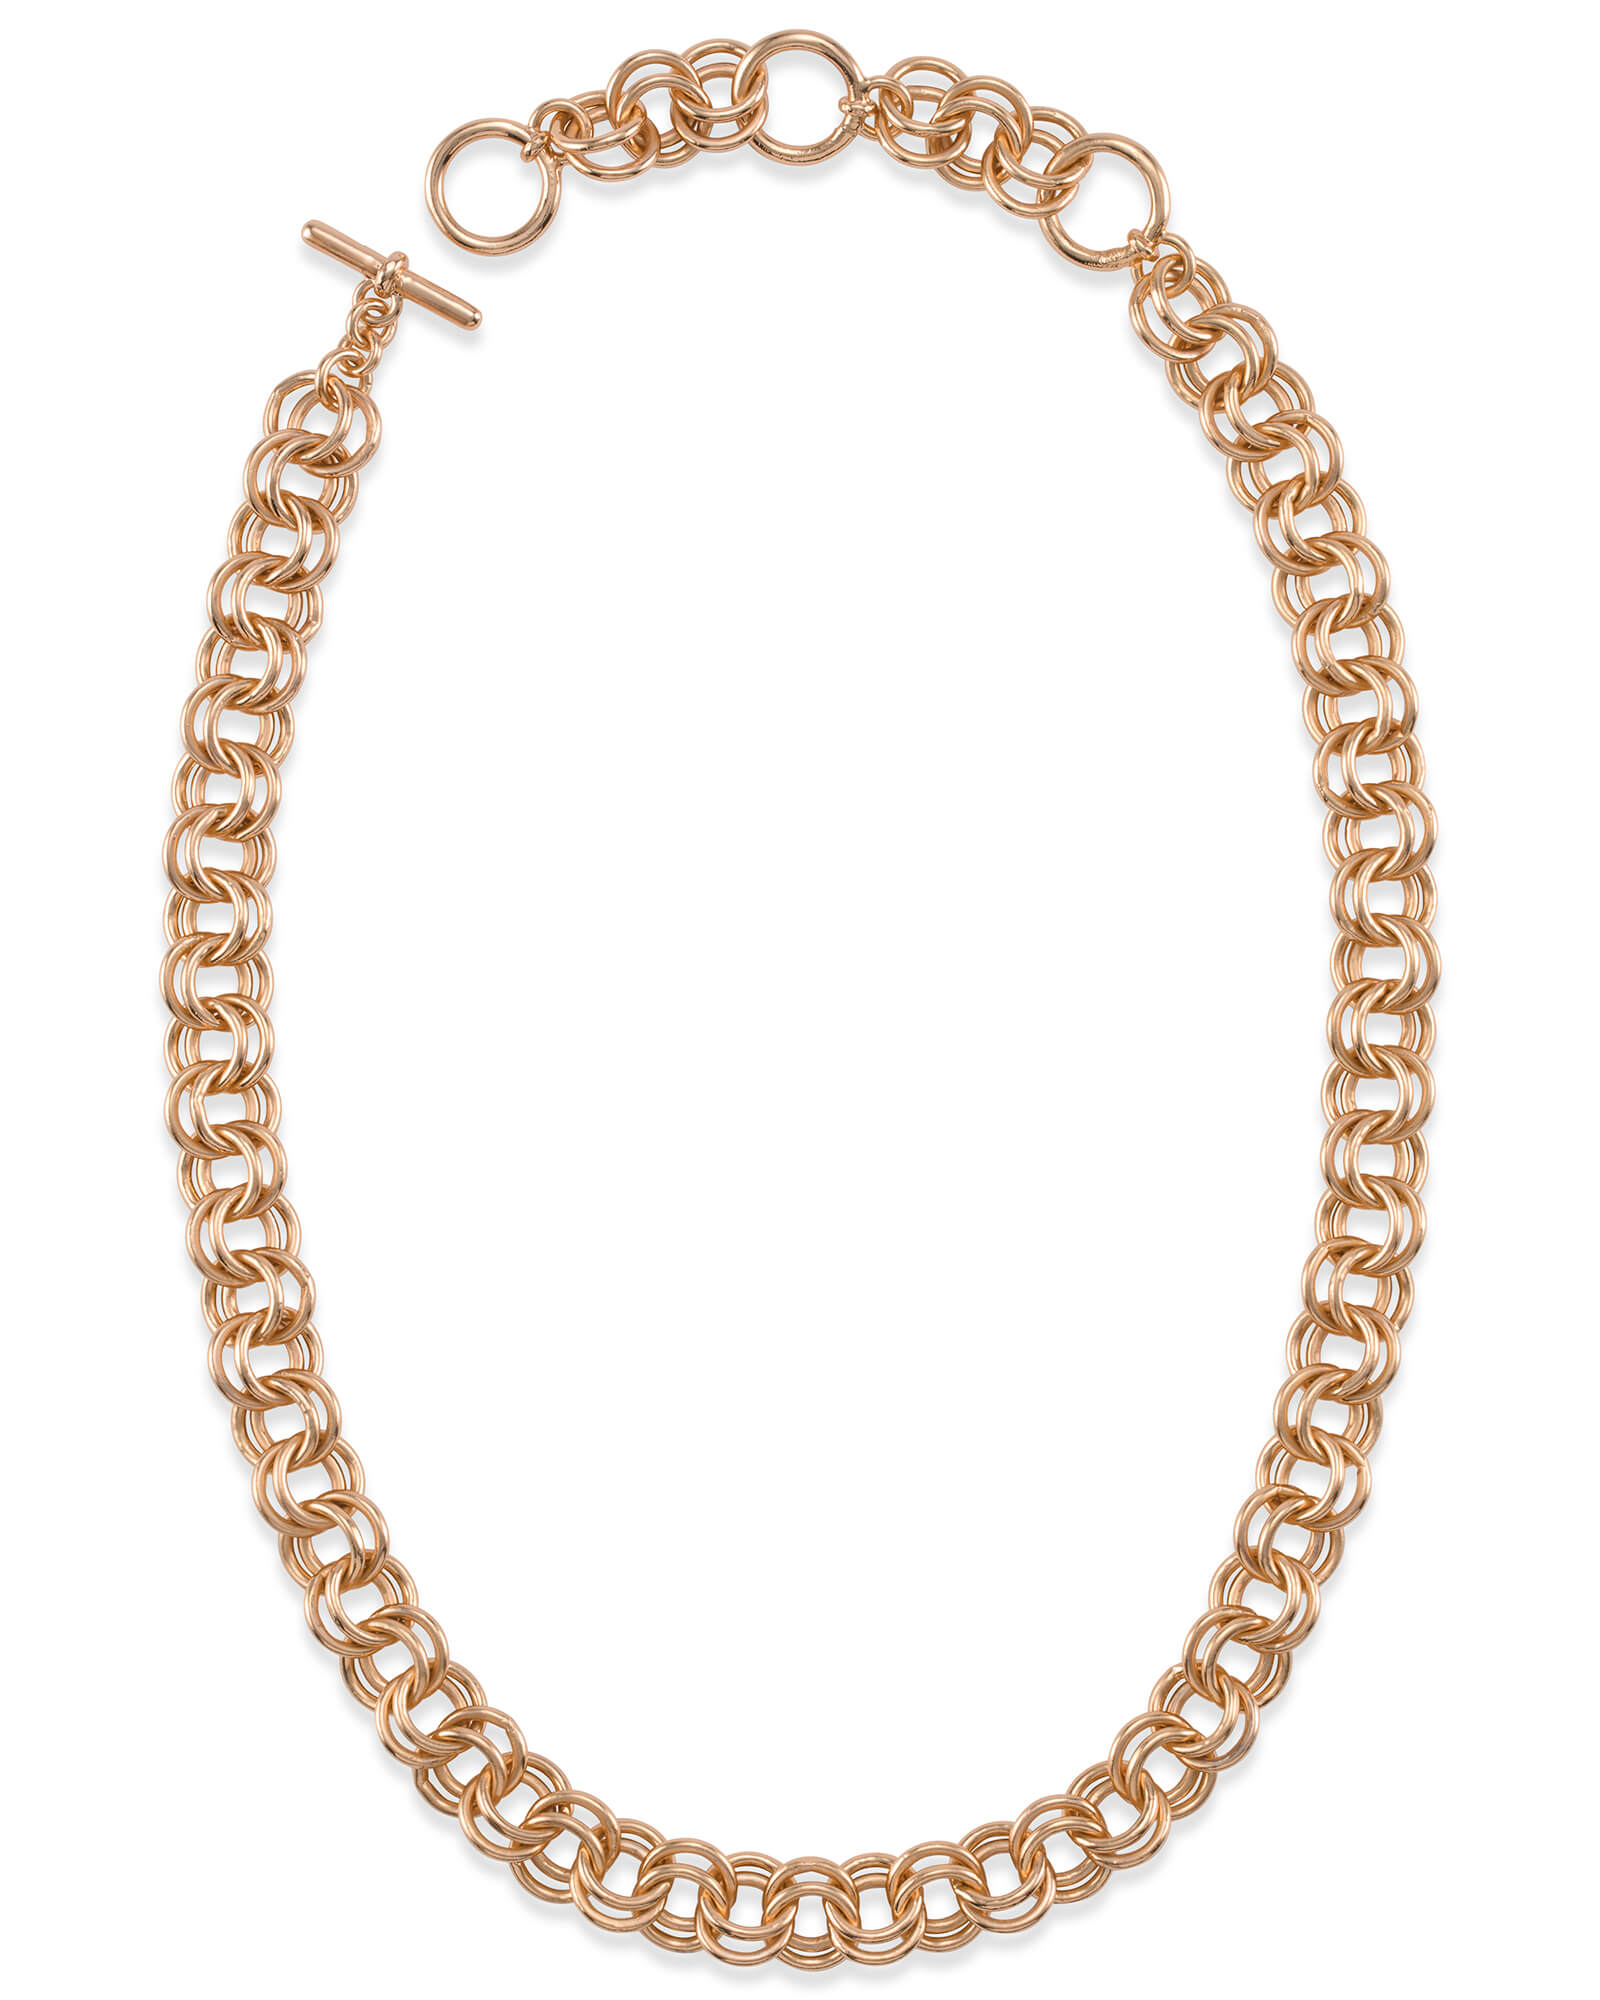 18 Inch Double Chain Link Necklace in Rose Gold